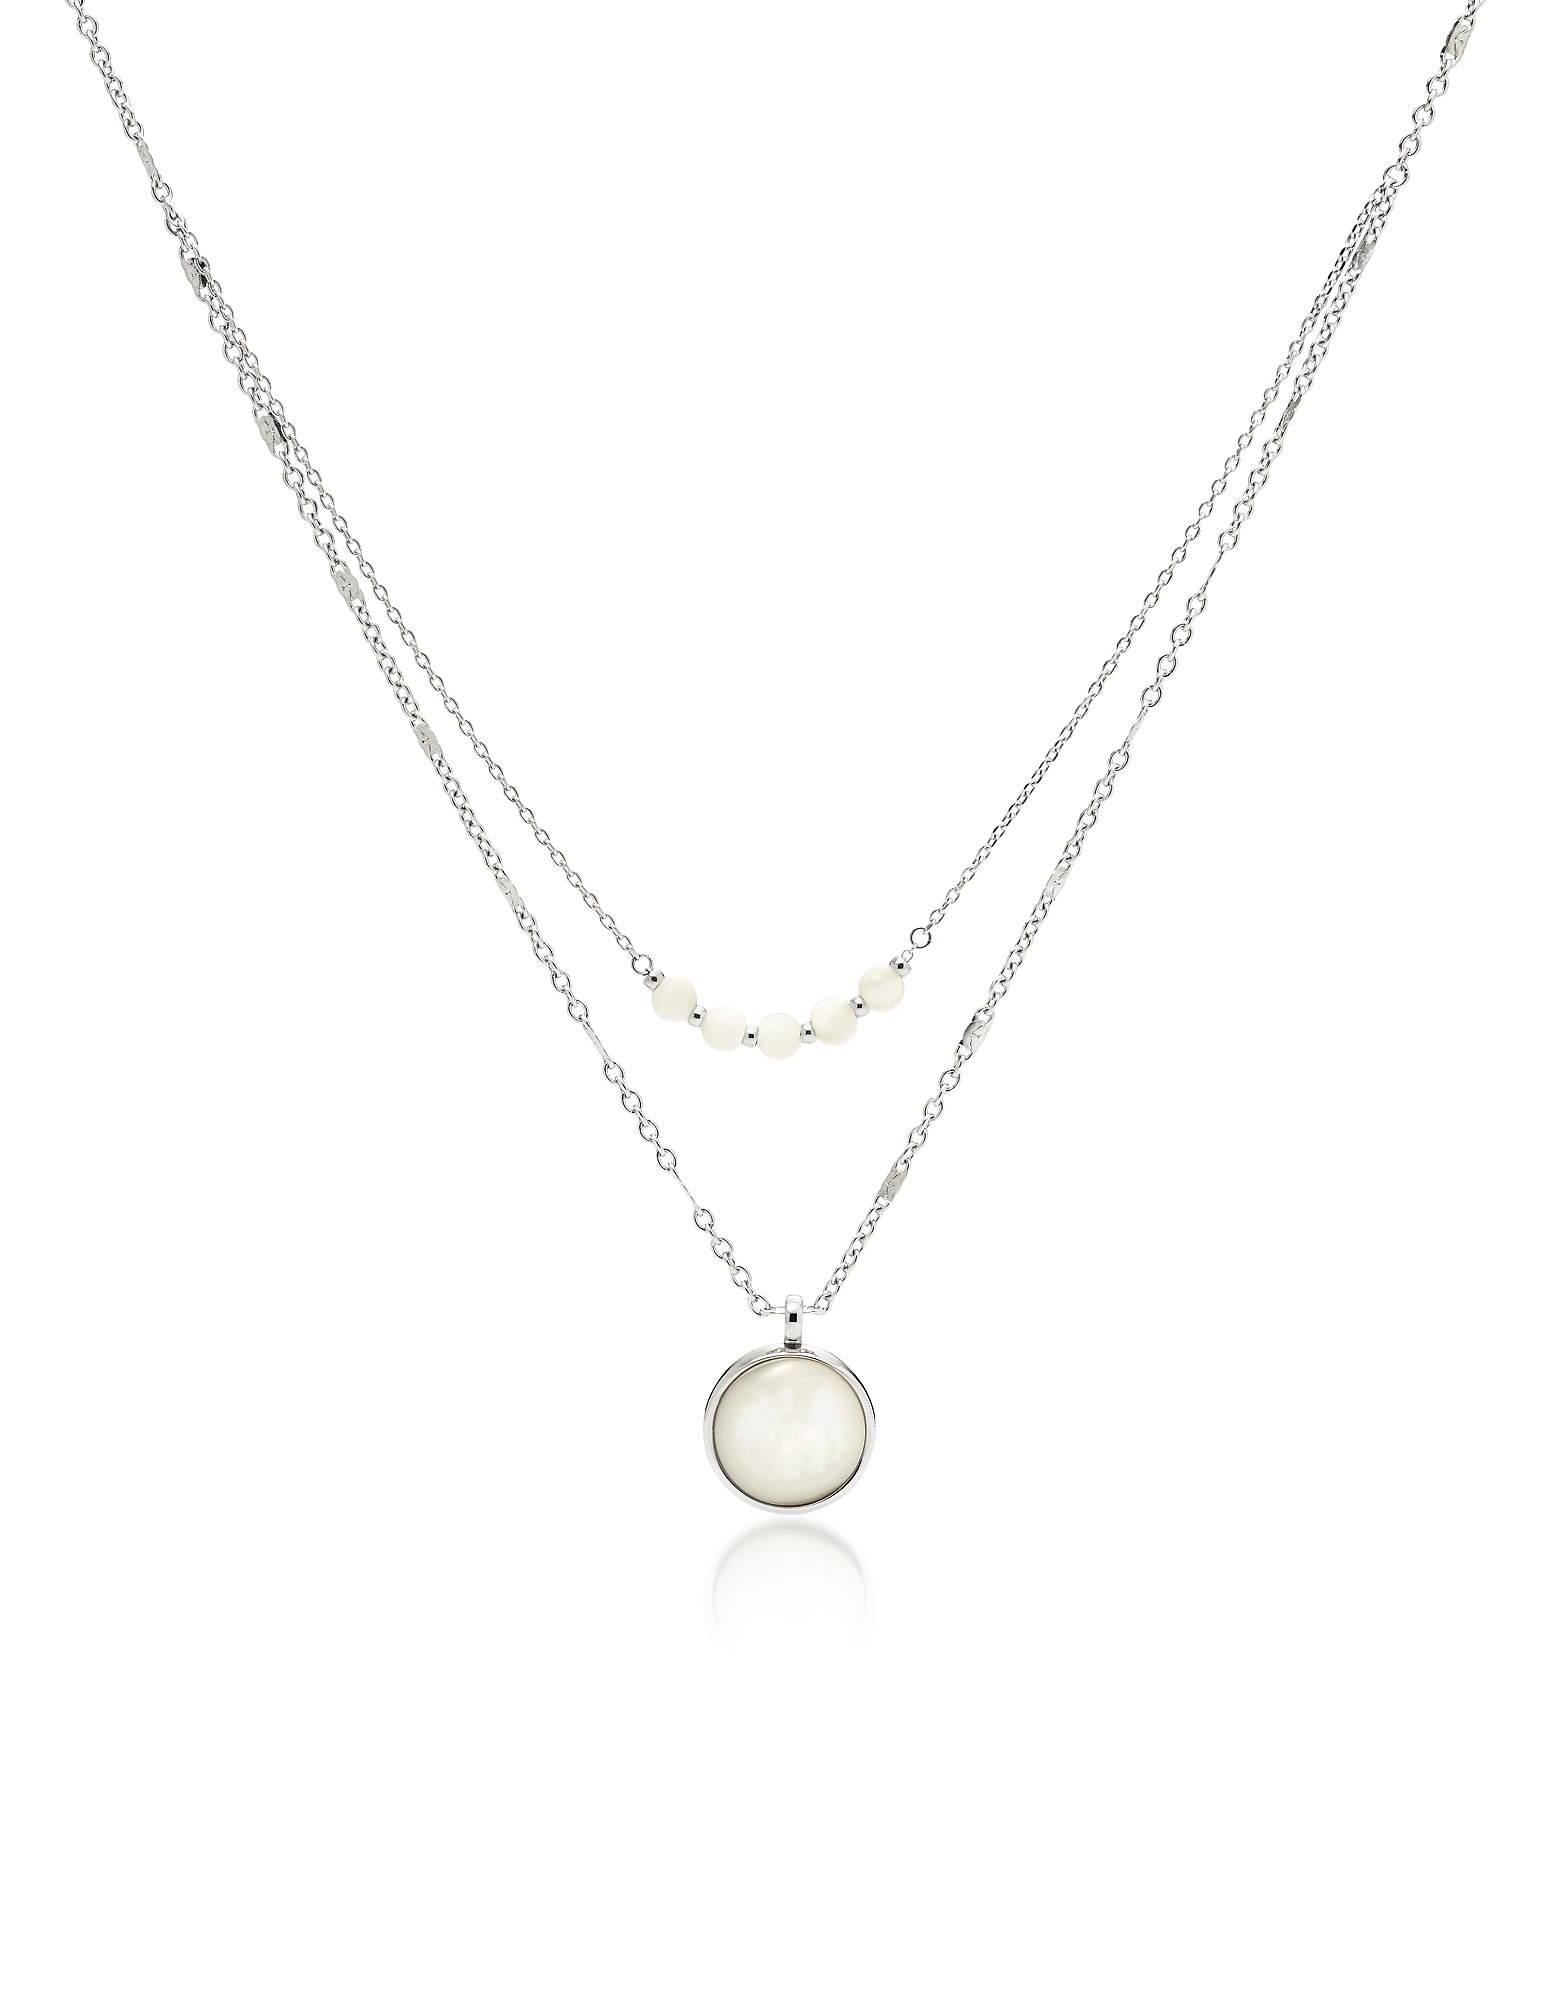 Fossil Necklaces, Double Mother of Pearl Disc Pendant Women's Necklace